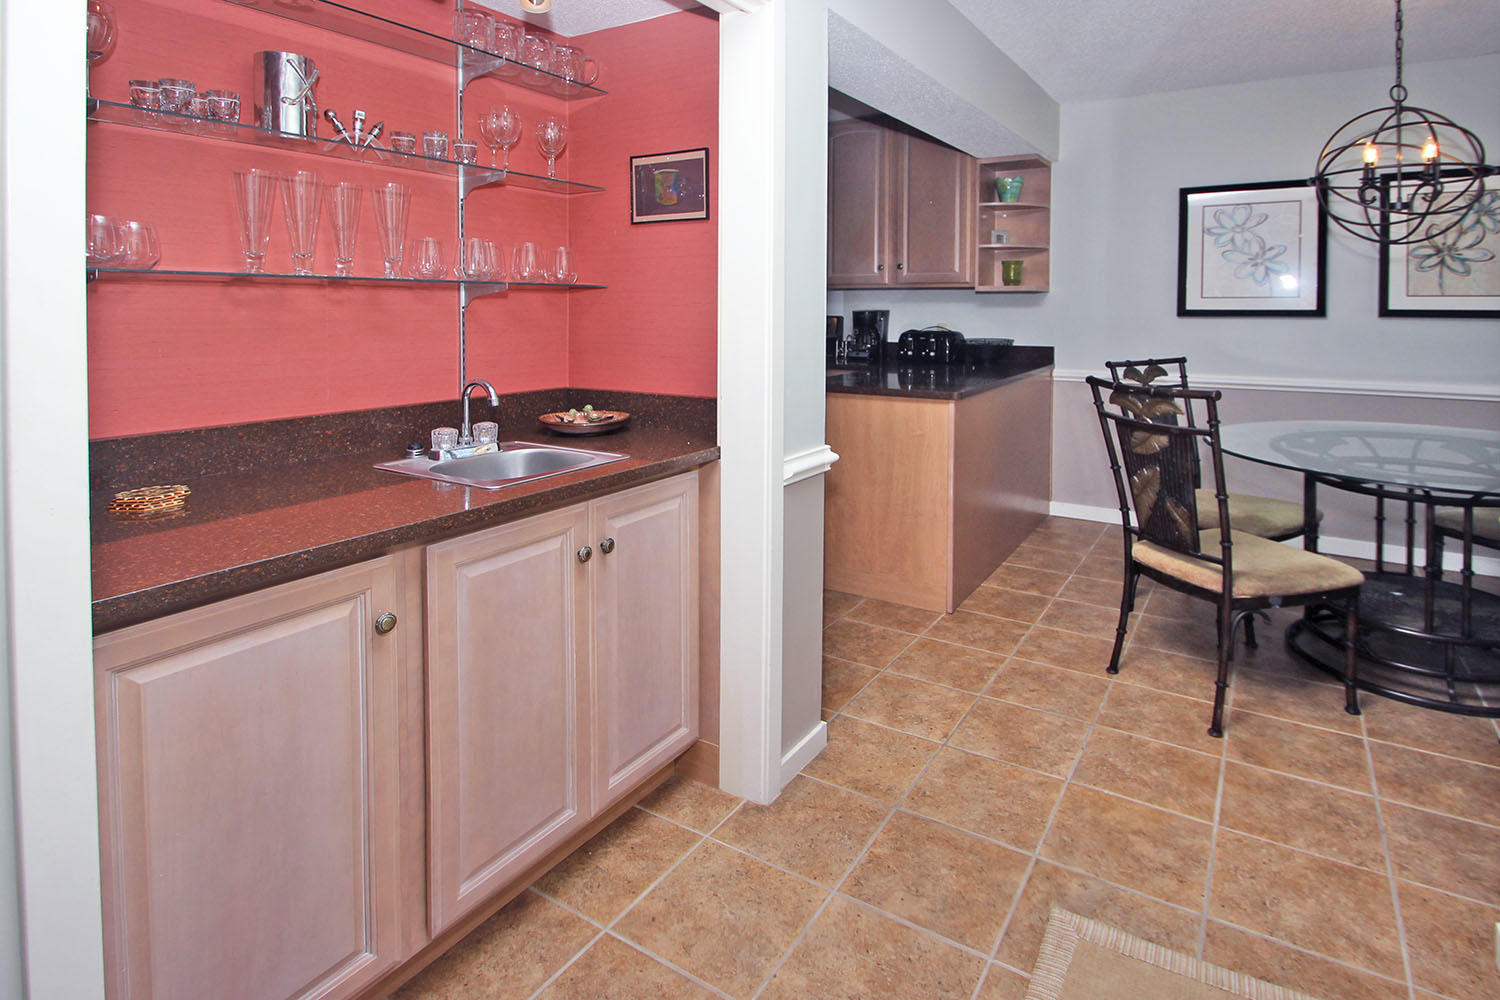 Wet bar by dinette area